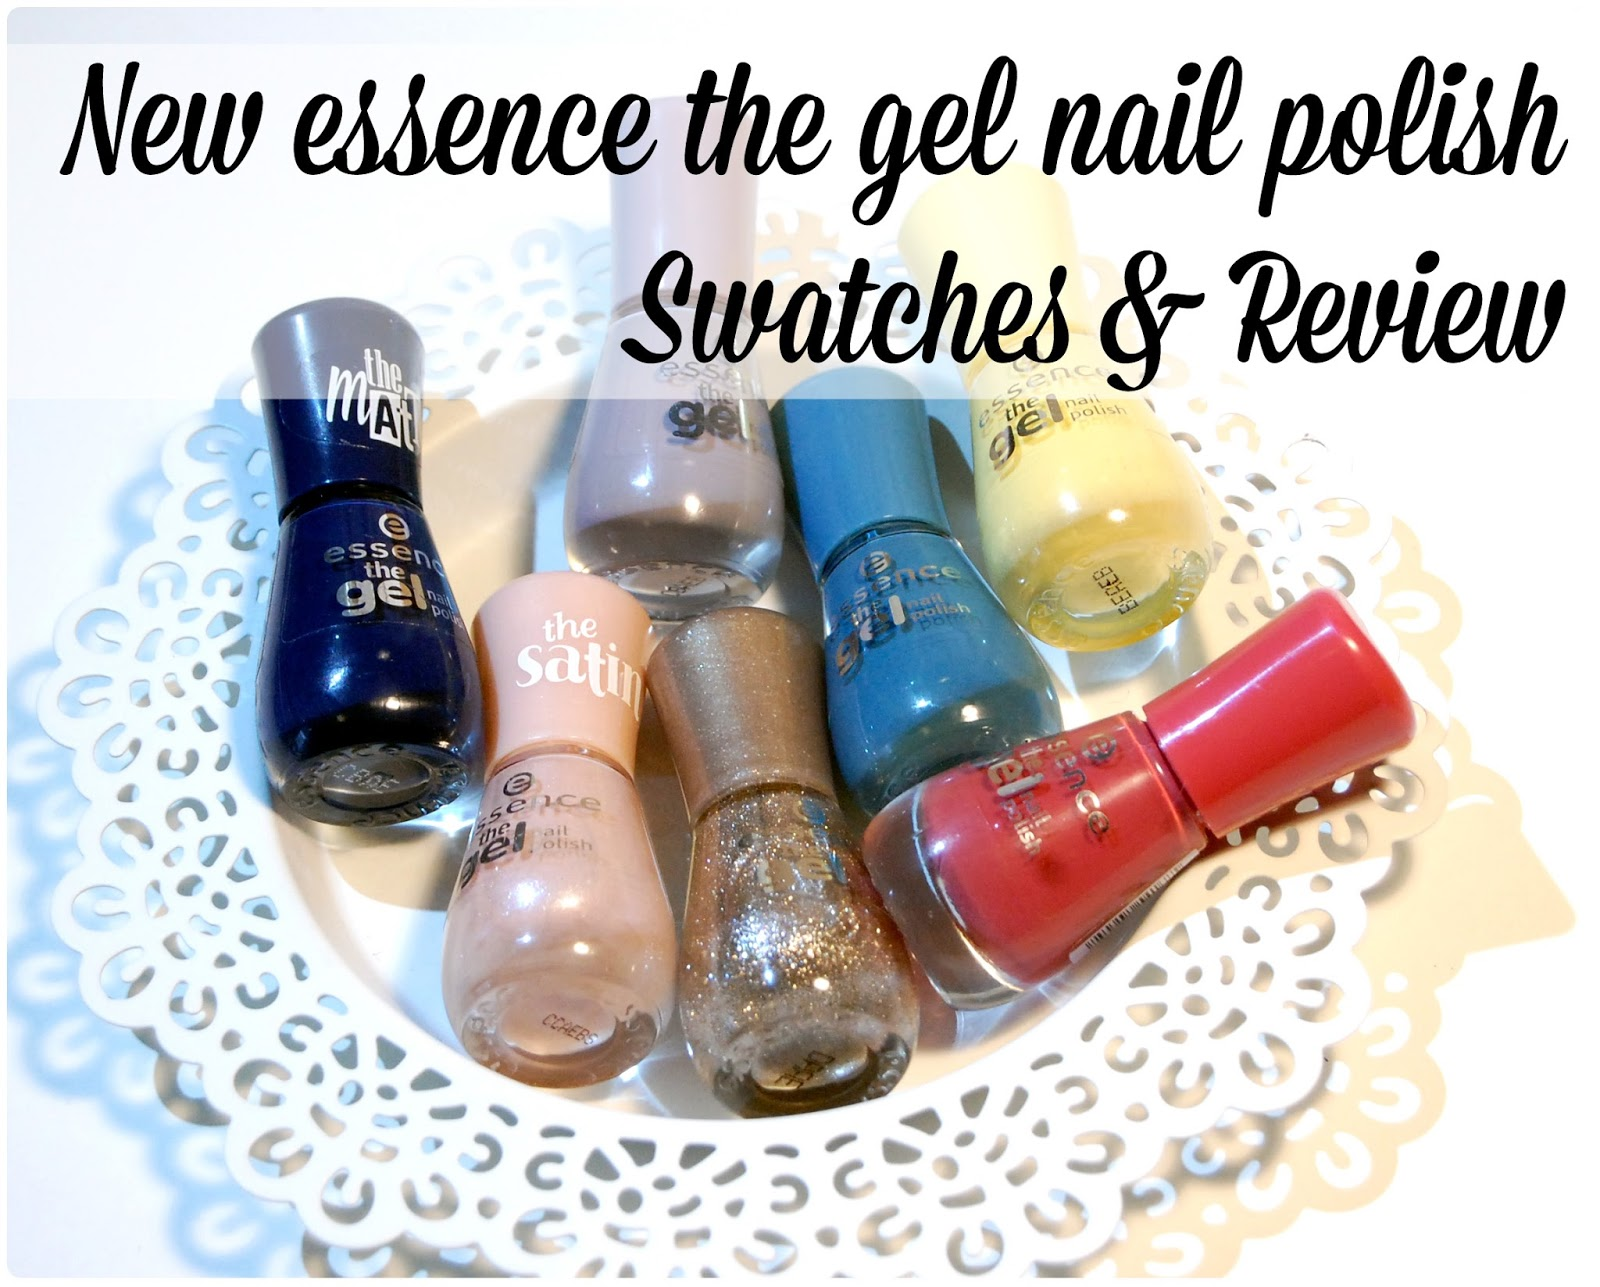 Gemstone Beauty: New essence the gel nail polish: Swatches + Review